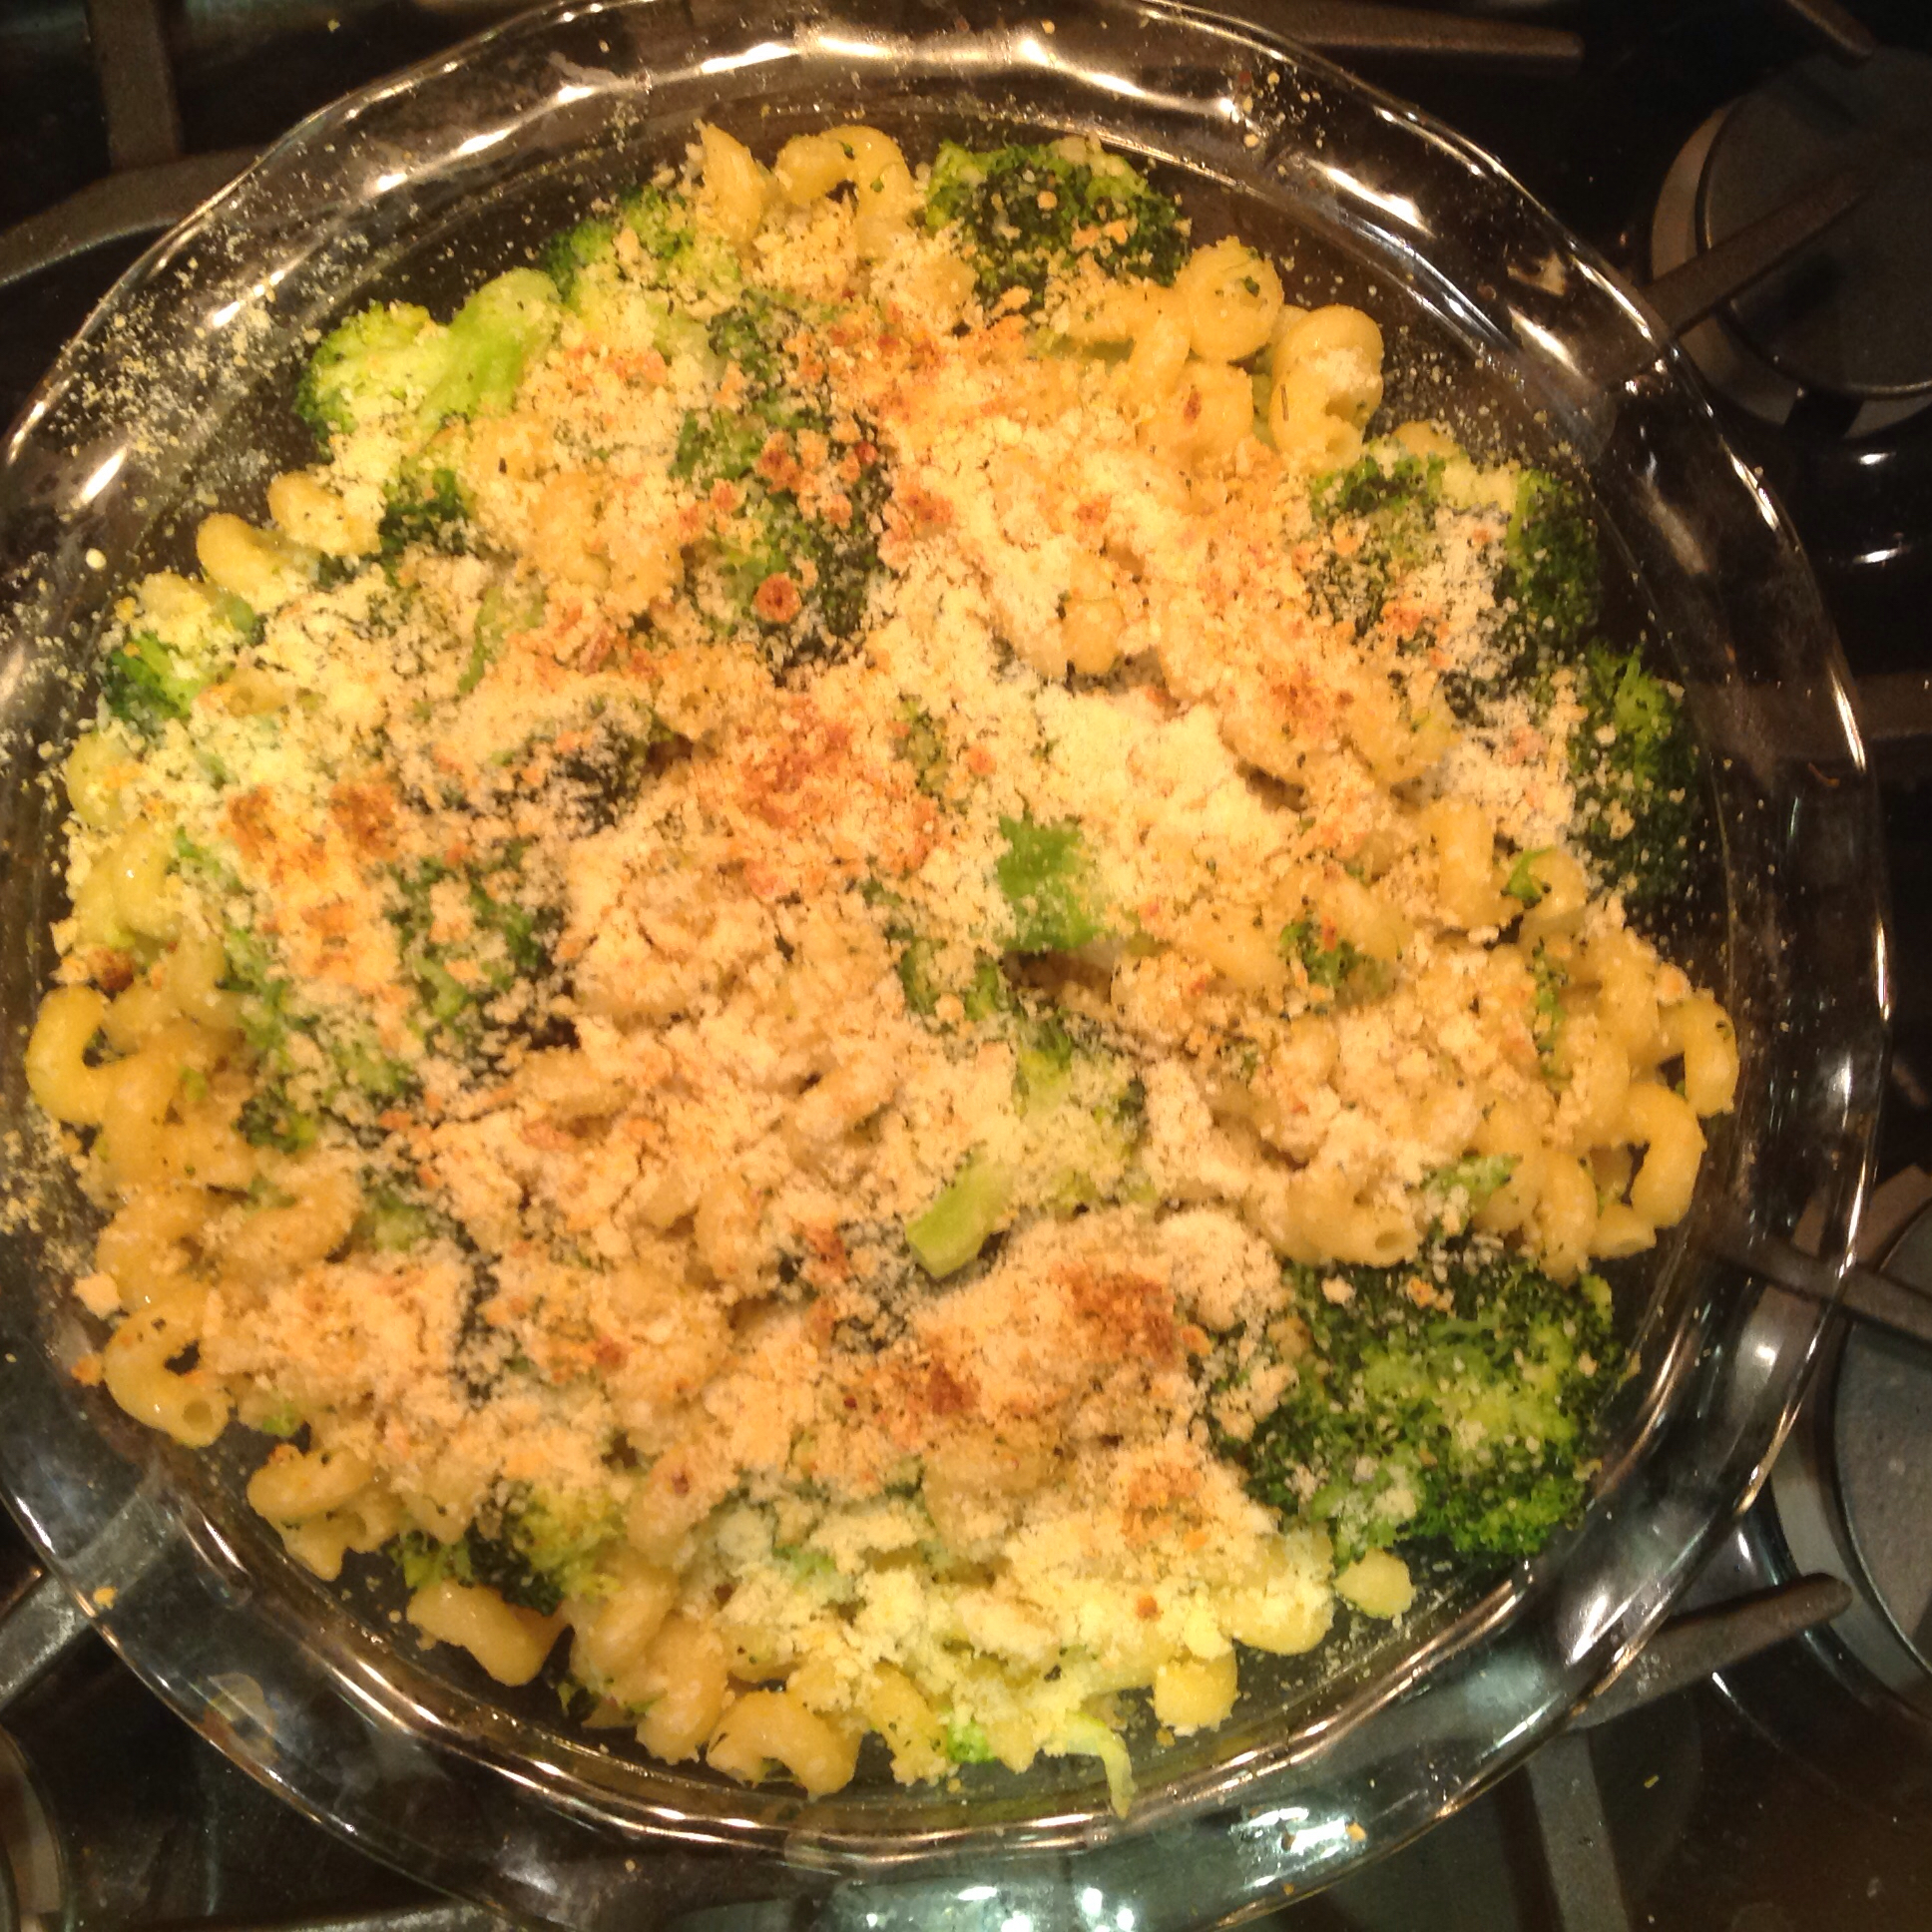 Orecchiette and Broccoli Crisp